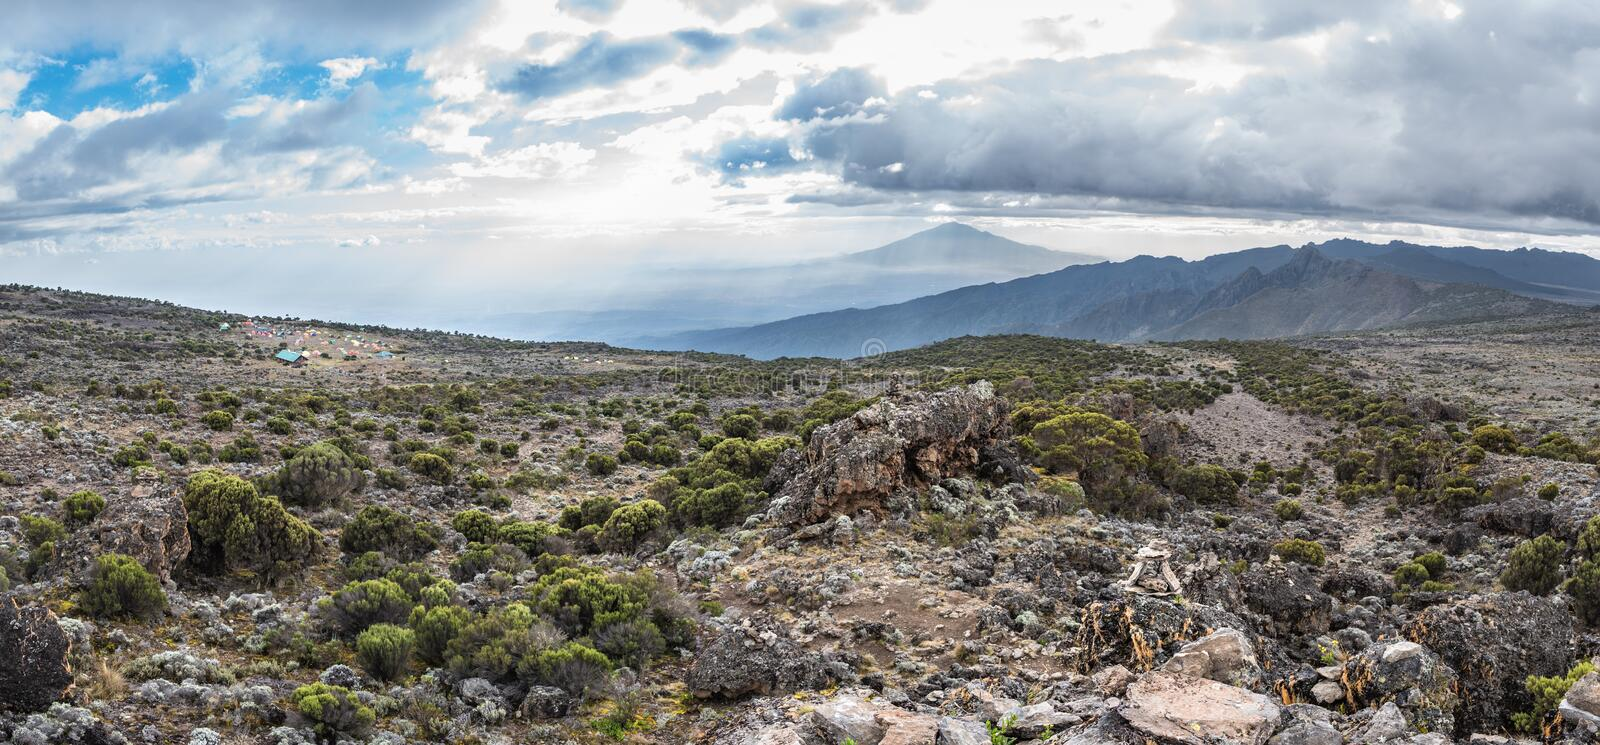 Panoramic view of Mount Meru and the Shira Cave Camp site on the Machame hiking route on Mt Kilimanjaro, Tanzania. Panoramic view of the Shira Cave Camp site on stock images